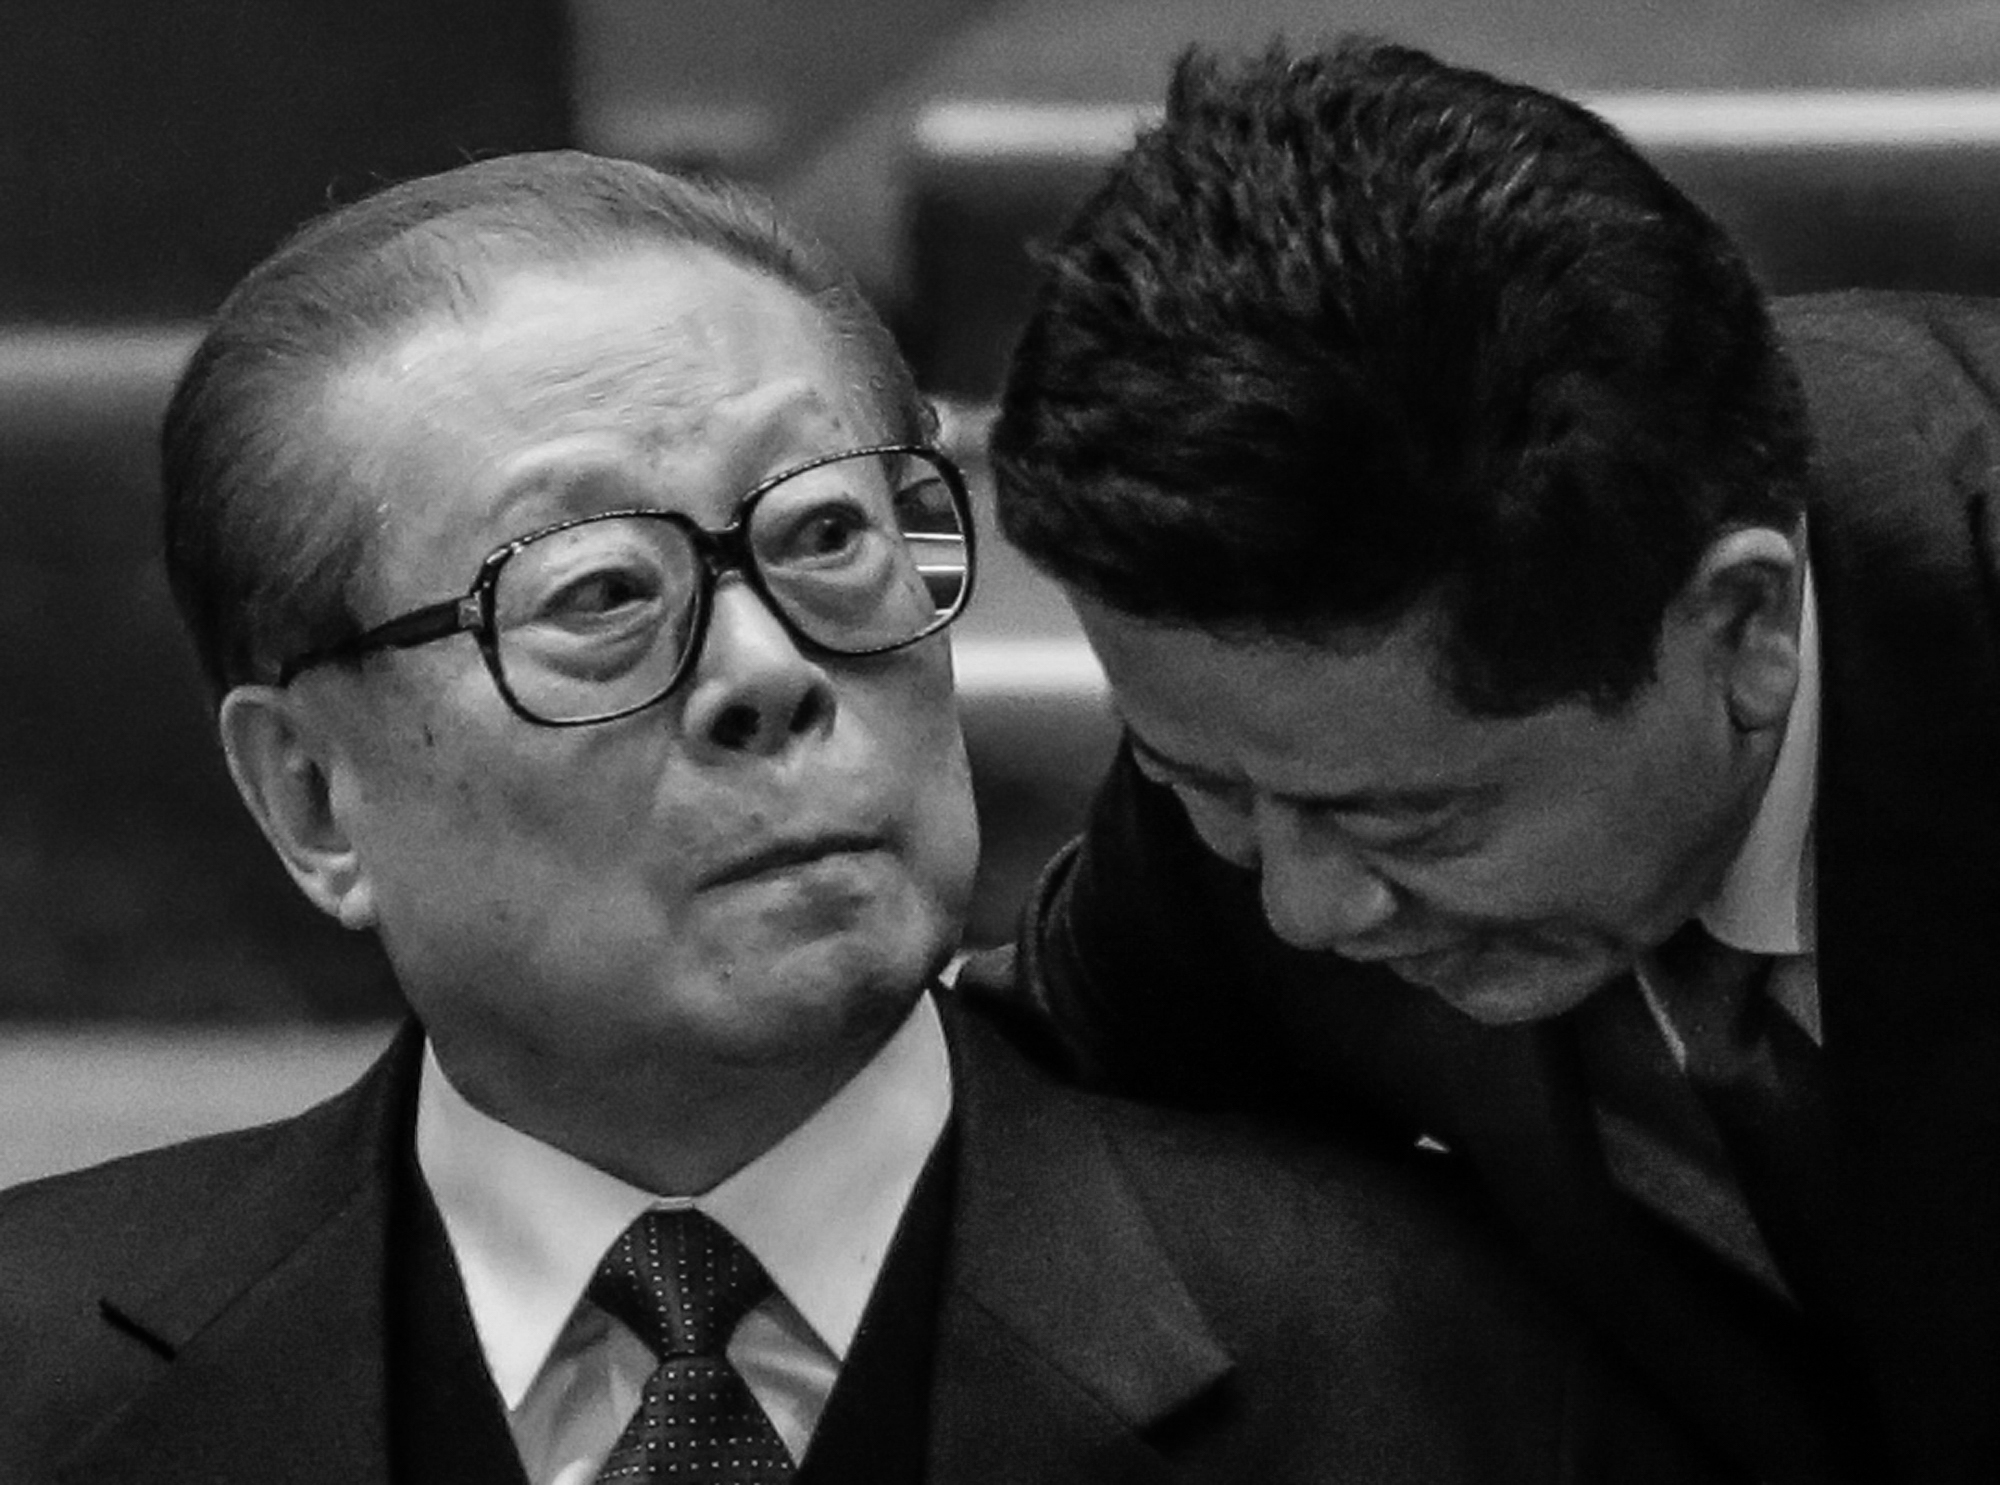 A man speaks to the Former Chinese leader Jiang Zemin, during the closing ceremony for the 18th Communist Party Congress at the Great Hall of the People in Beijing on Nov. 14, 2012. (AP Photo/Lee Jin-man)